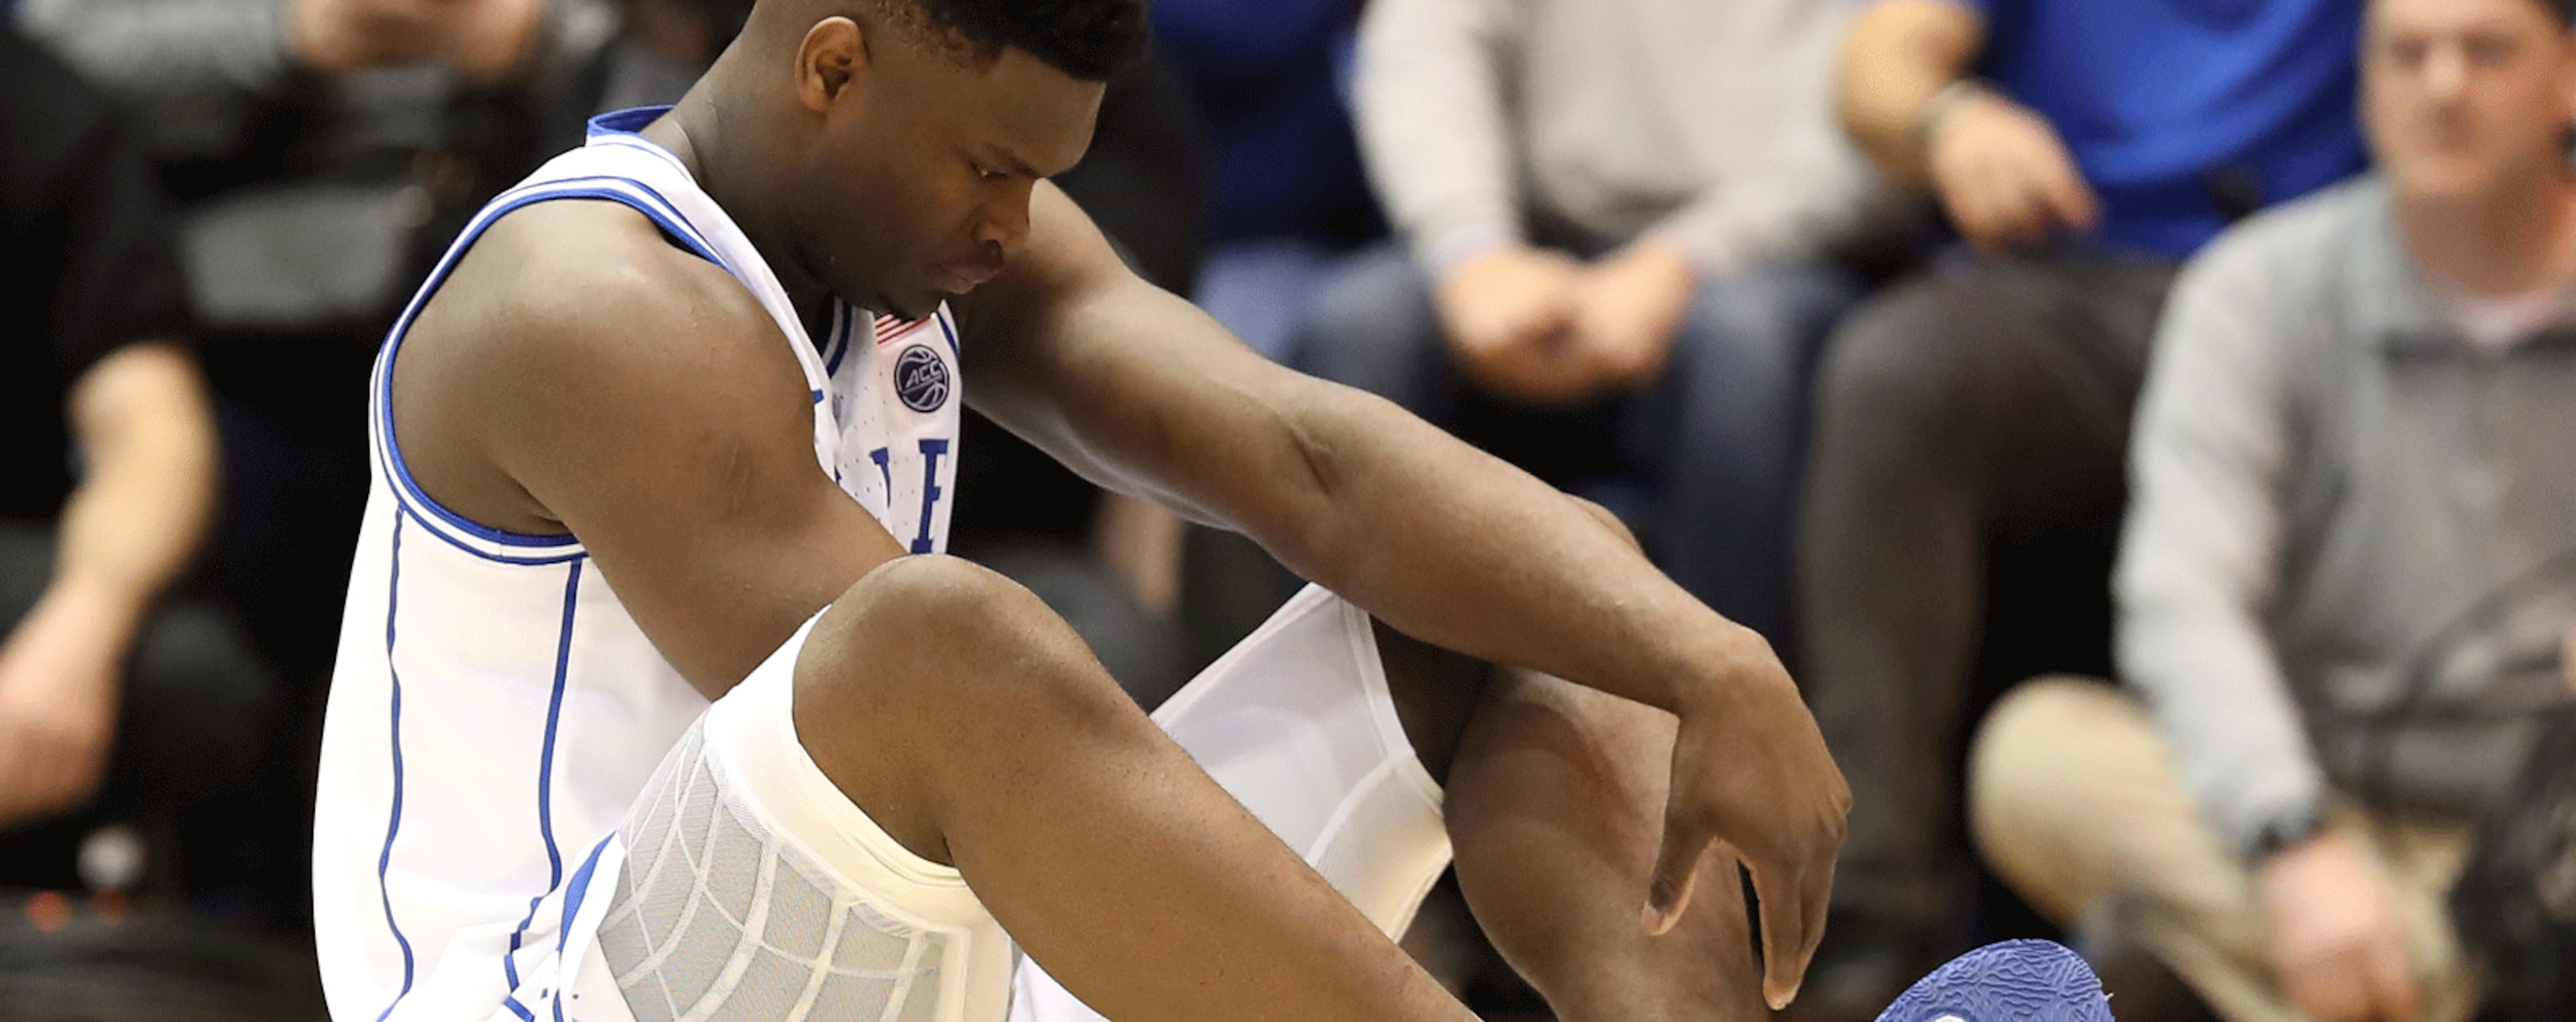 Zion Williamson #1 of the Duke Blue Devils reacts after falling as his shoe breaks against Luke Maye #32 of the North Carolina Tar Heels during their game at Cameron Indoor Stadium on February 20, 2019 in Durham, North Carolina.